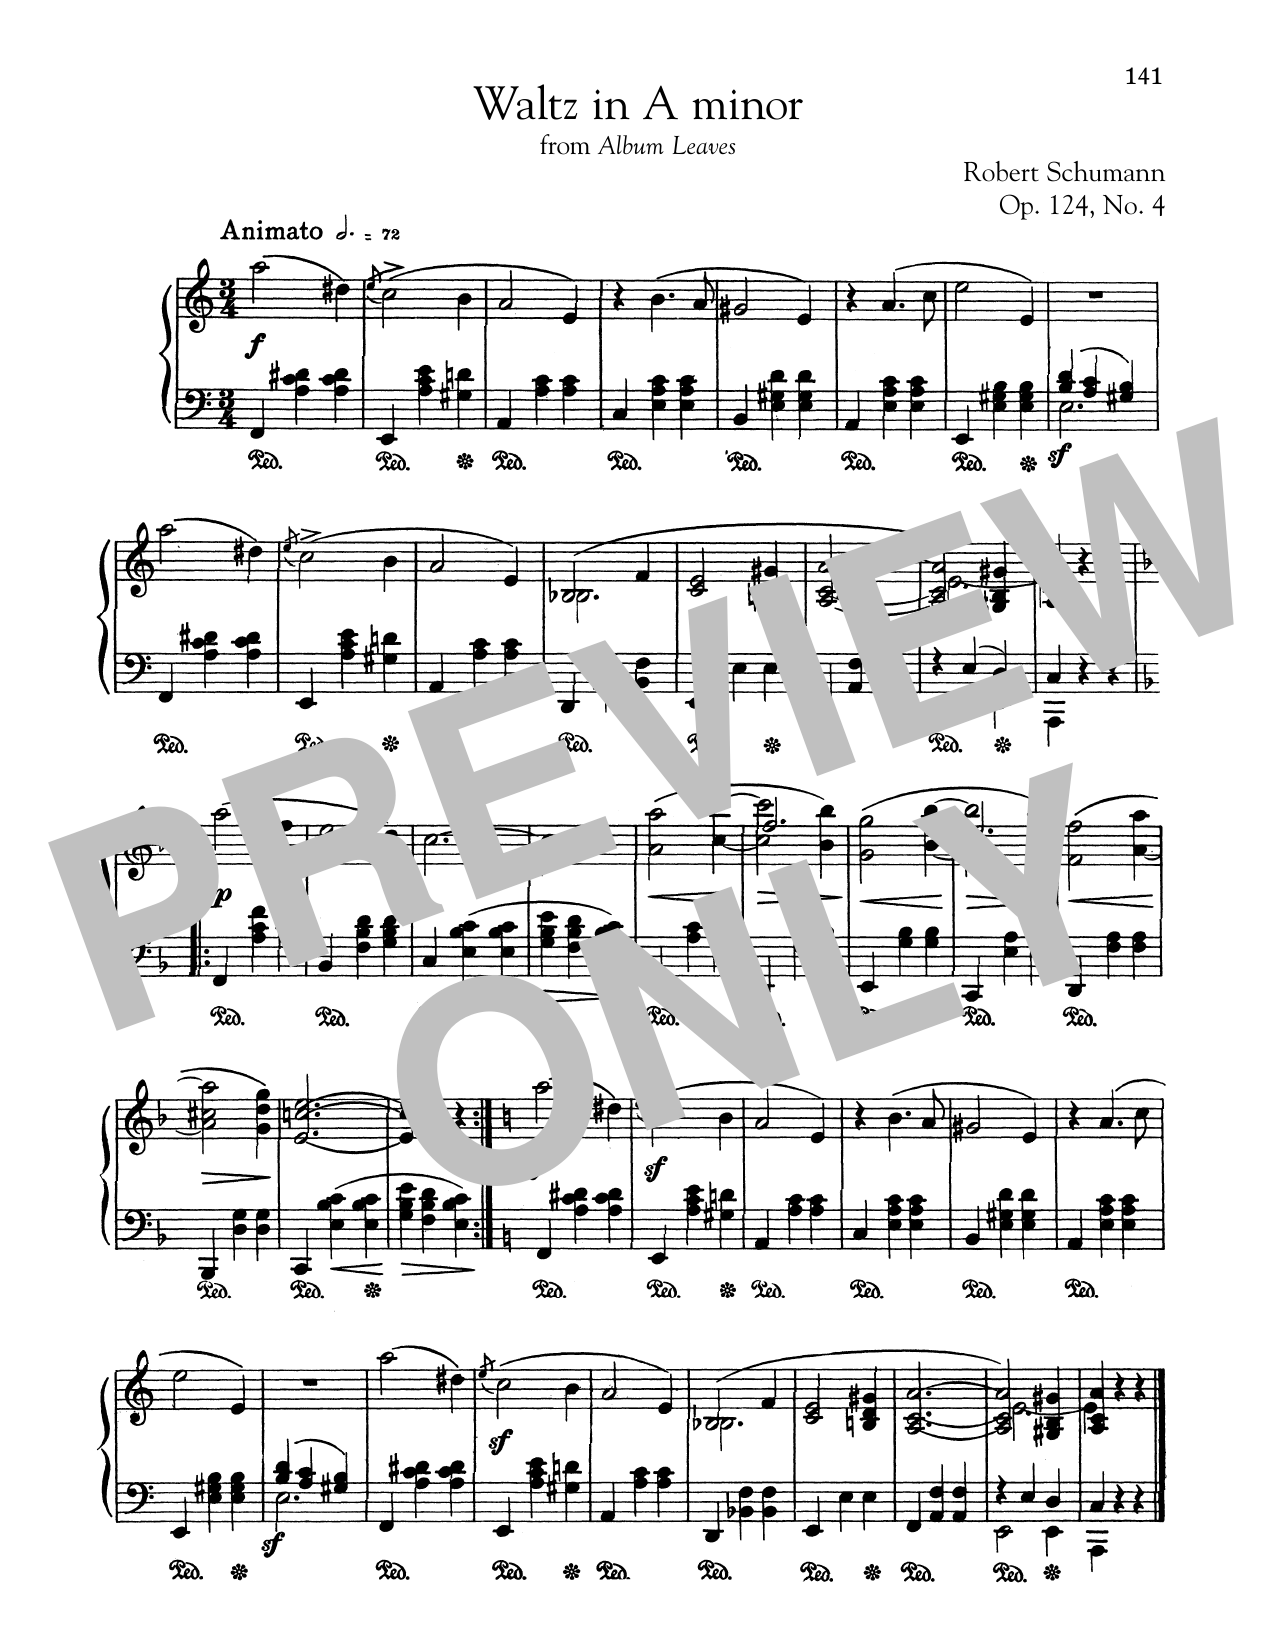 Robert Schumann Waltz In A Minor sheet music notes and chords. Download Printable PDF.